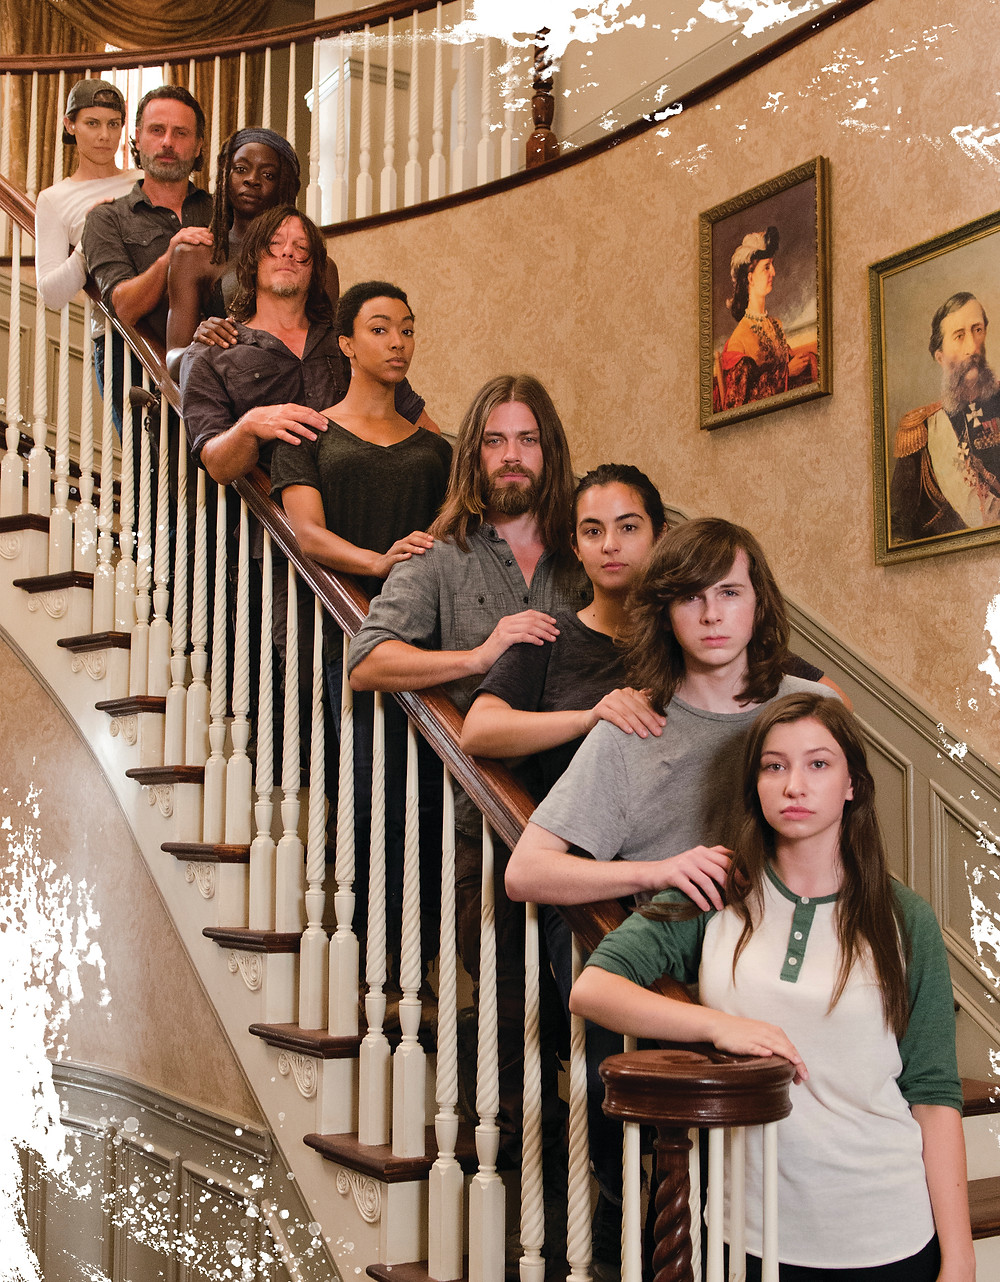 When presented with a beautiful Georgian staircase, even villains and heroes join hands to make the best of the opportunity. BTF: Lauren Cohan (Maggie Greene), Andrew Lincoln (Rick Grimes), Danai Girora (Michonne), Norman Reedus (Daryl Dixon), Sonequa Martin-Green (Sasha Williams), Tom Payne (Paul 'Jesus' Rovia), Alanna Masterson (Tara Chambler), Chandler Riggs (Carl Grimes), Katelyn Nacon (Enid). Photo credit: Gene Page/AMC